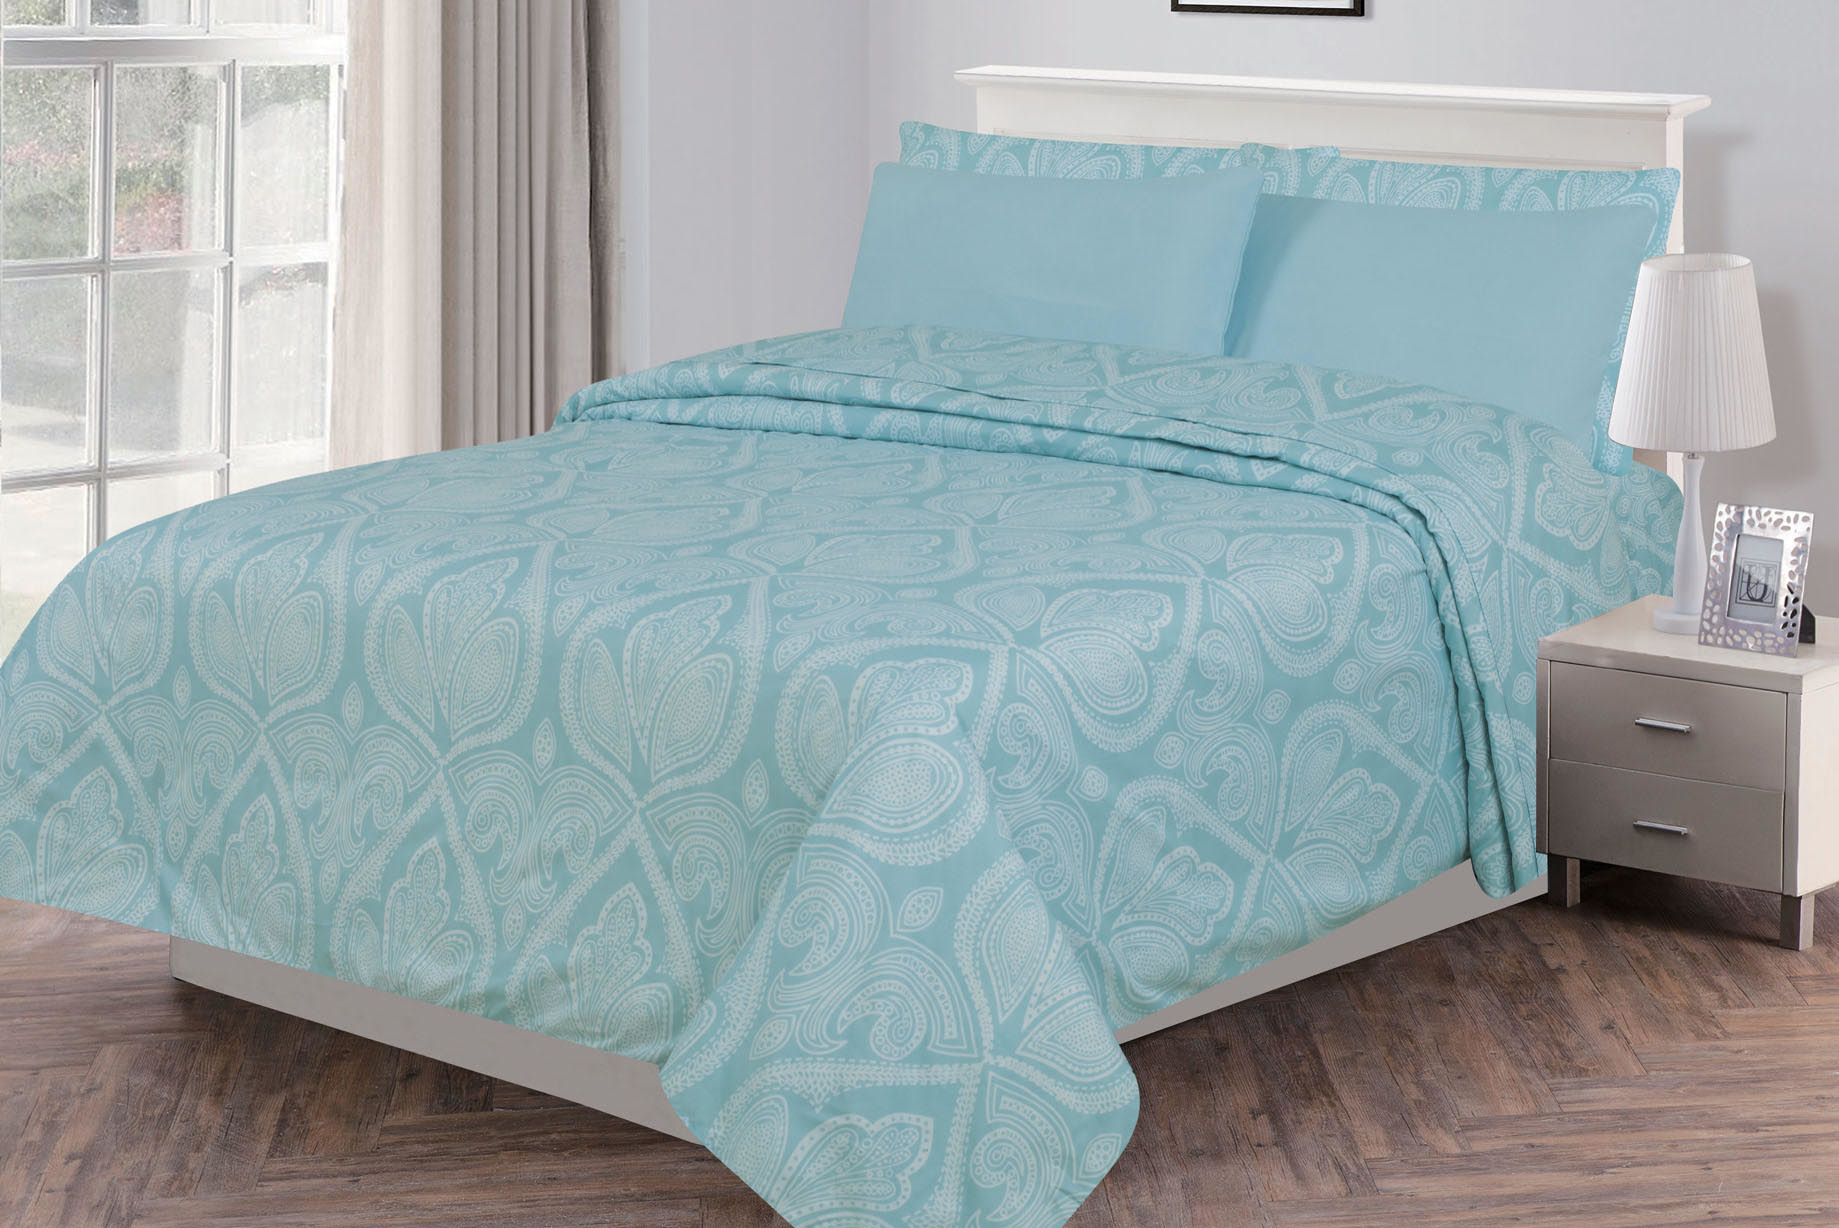 6 Piece: Paisley Printed Egyptian Bed Sheets set, Soft Bedding - Wrinkle, Fade, Stain Resistant - King, Blue